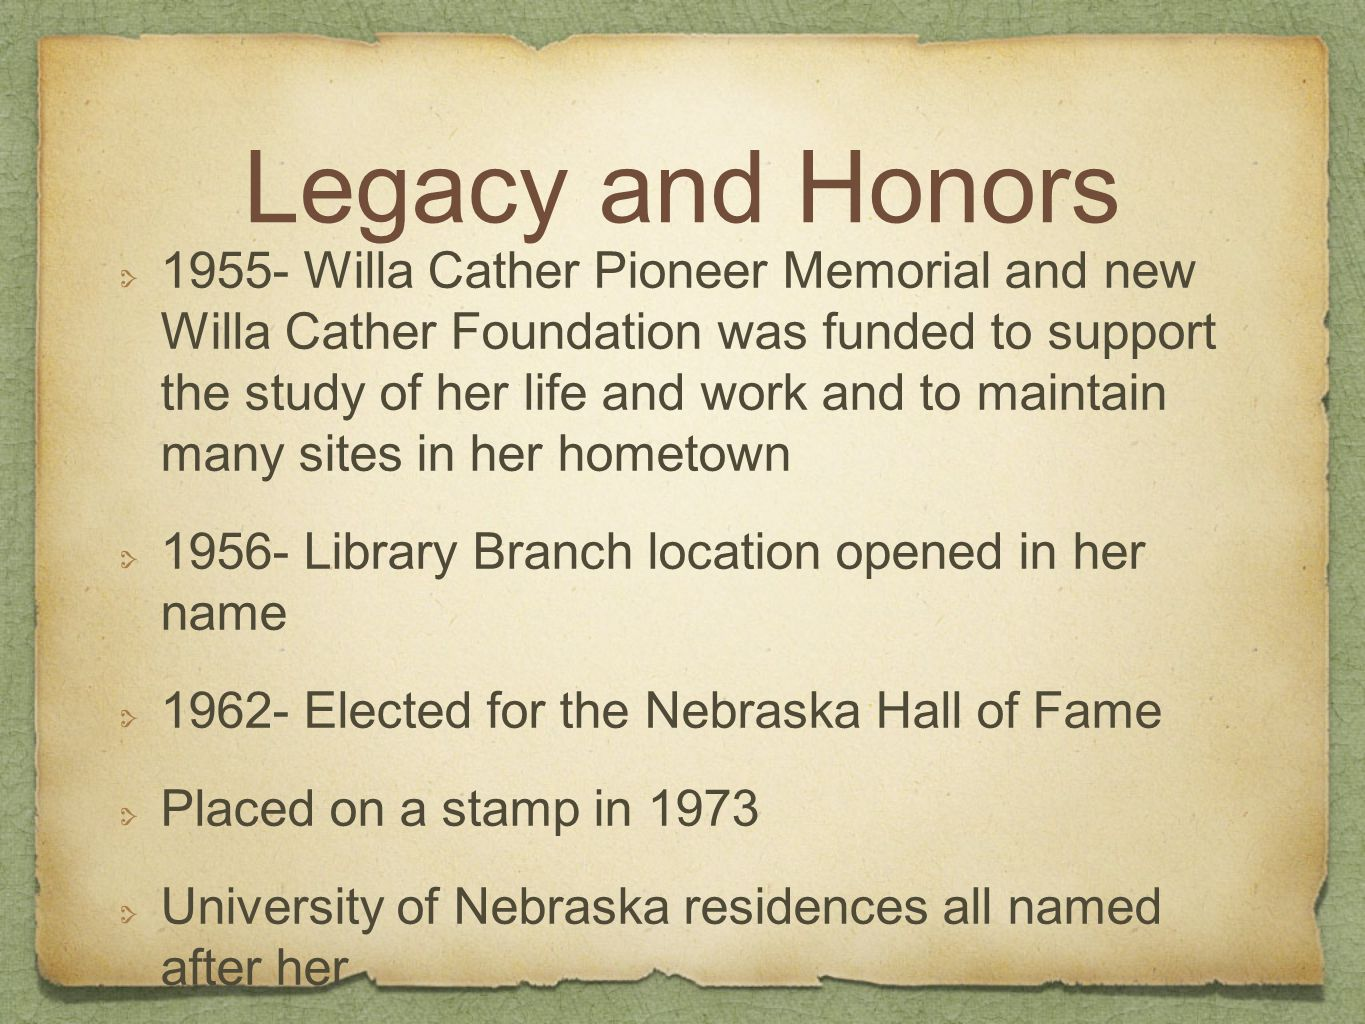 Legacy and Honors Willa Cather Pioneer Memorial and new Willa Cather Foundation was funded to support the study of her life and work and to maintain many sites in her hometown Library Branch location opened in her name Elected for the Nebraska Hall of Fame Placed on a stamp in 1973 University of Nebraska residences all named after her